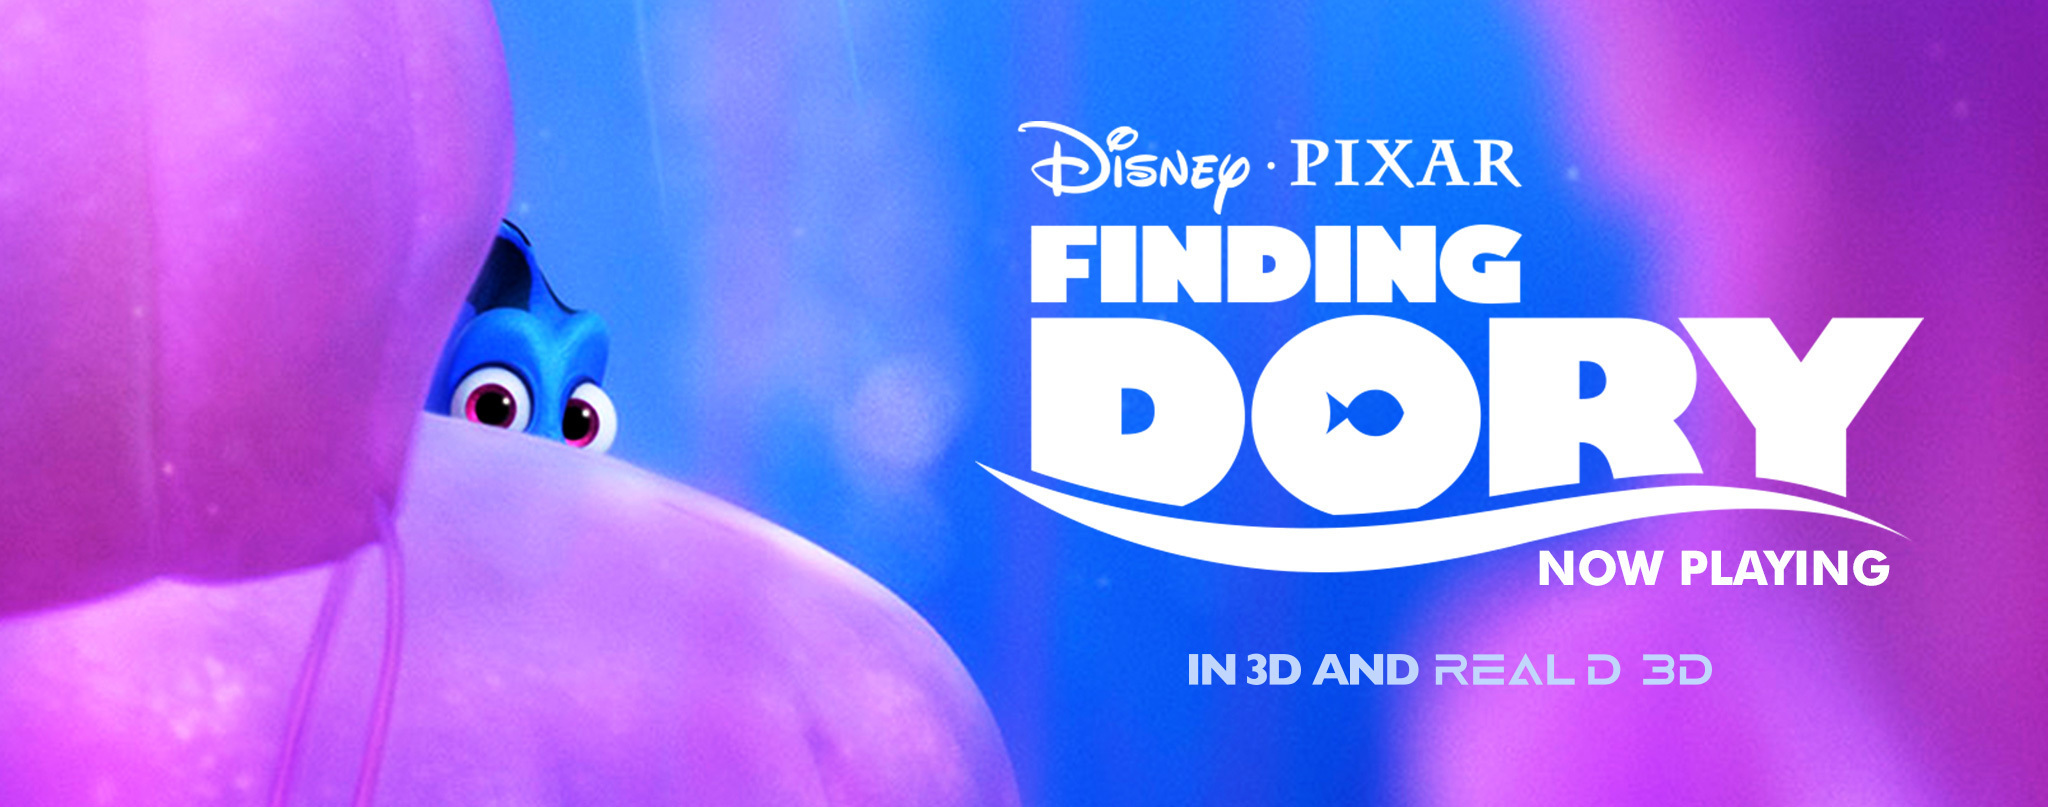 Finding Dory - Theatrical header - animated